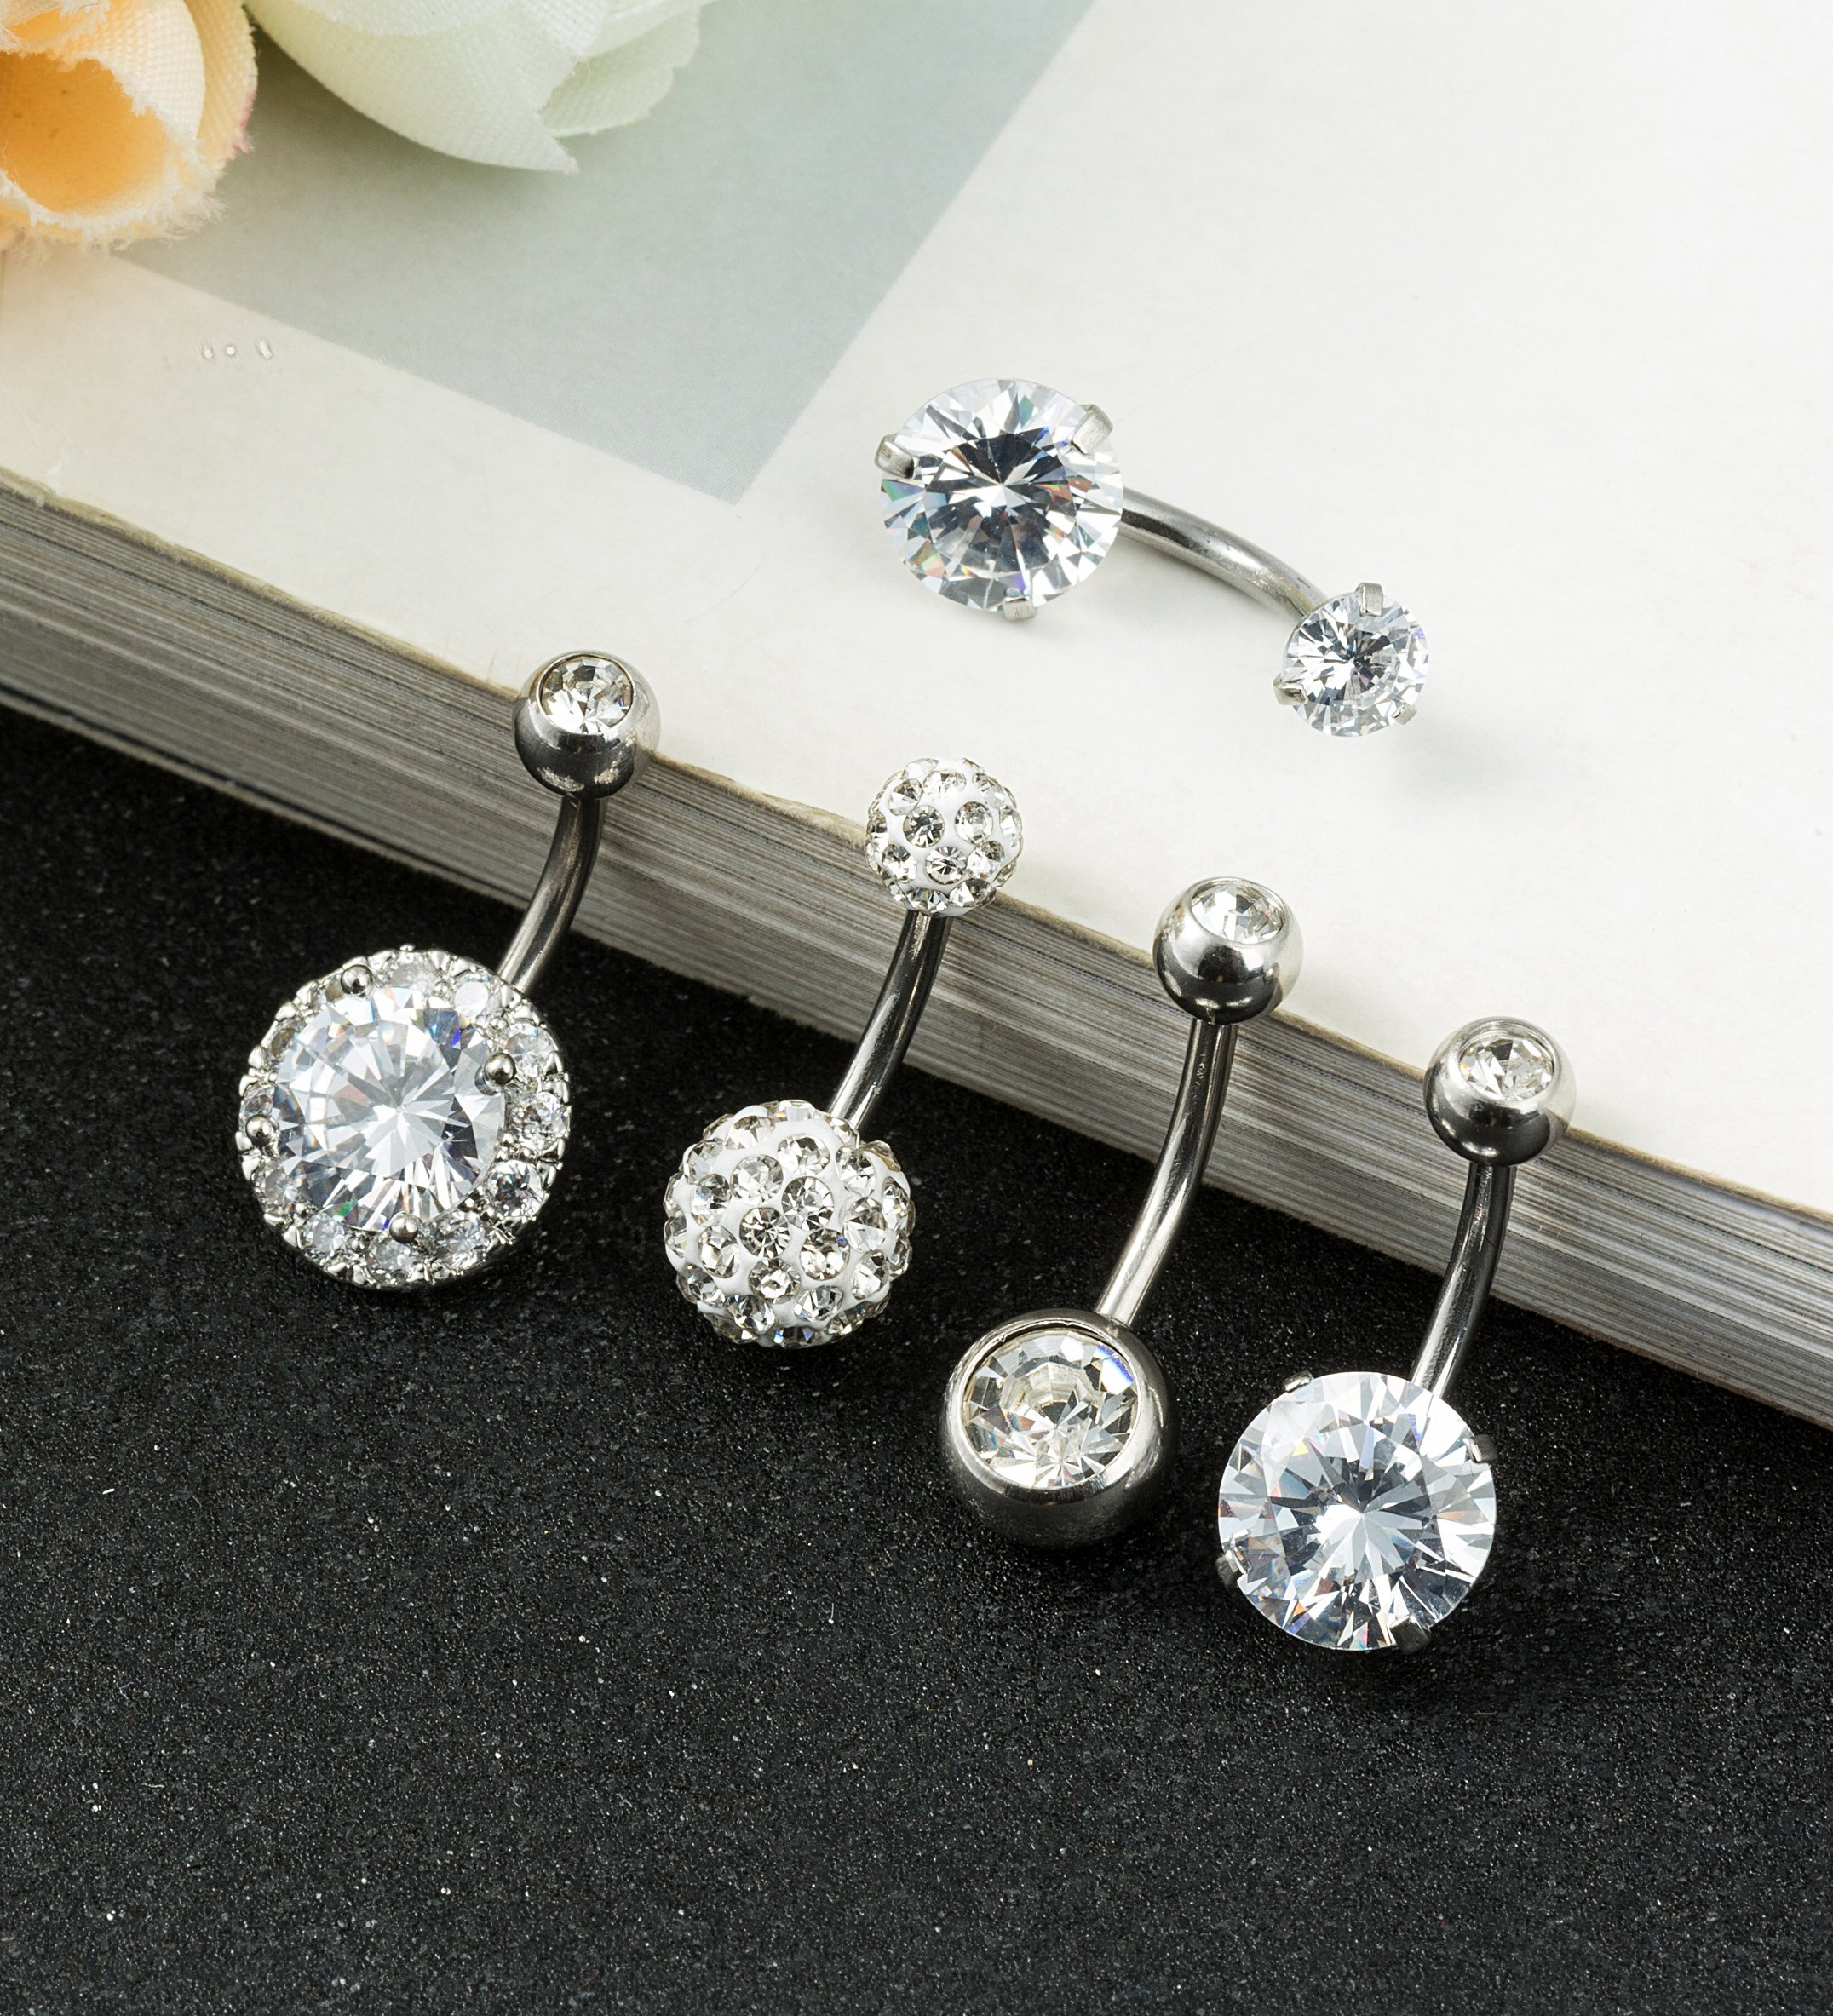 REVOLIA 5Pcs 14G Stainless Steel Belly Button Rings for Women Girls Navel Rings CZ Body Piercing S by REVOLIA (Image #3)